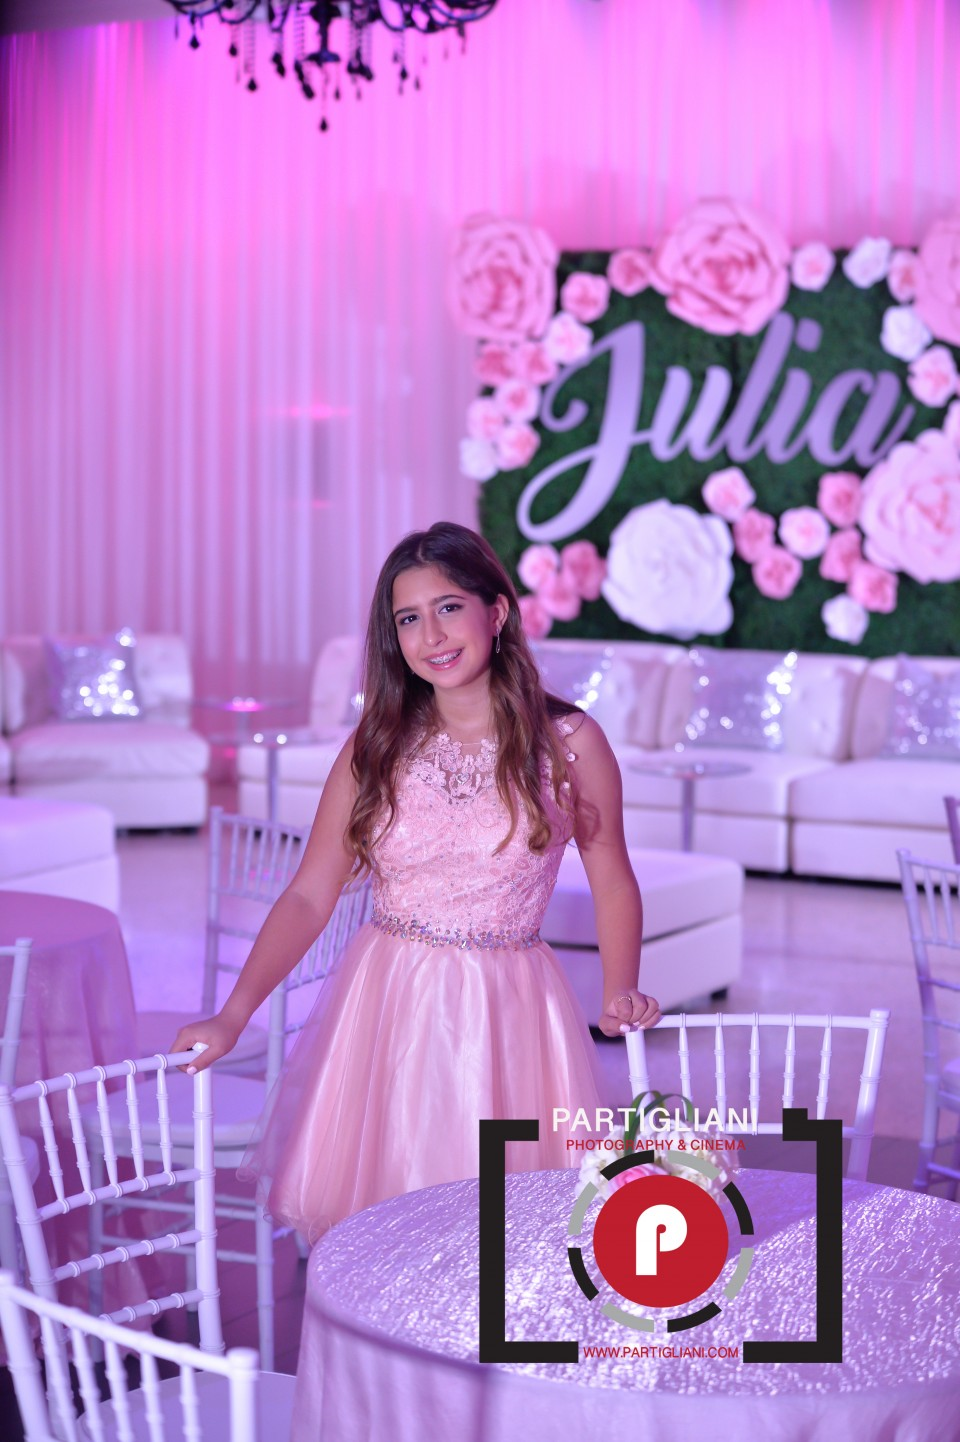 LAVAN VENUE, PARTIGLIANI PHOTOGRAPHY, JULIA SHER-14